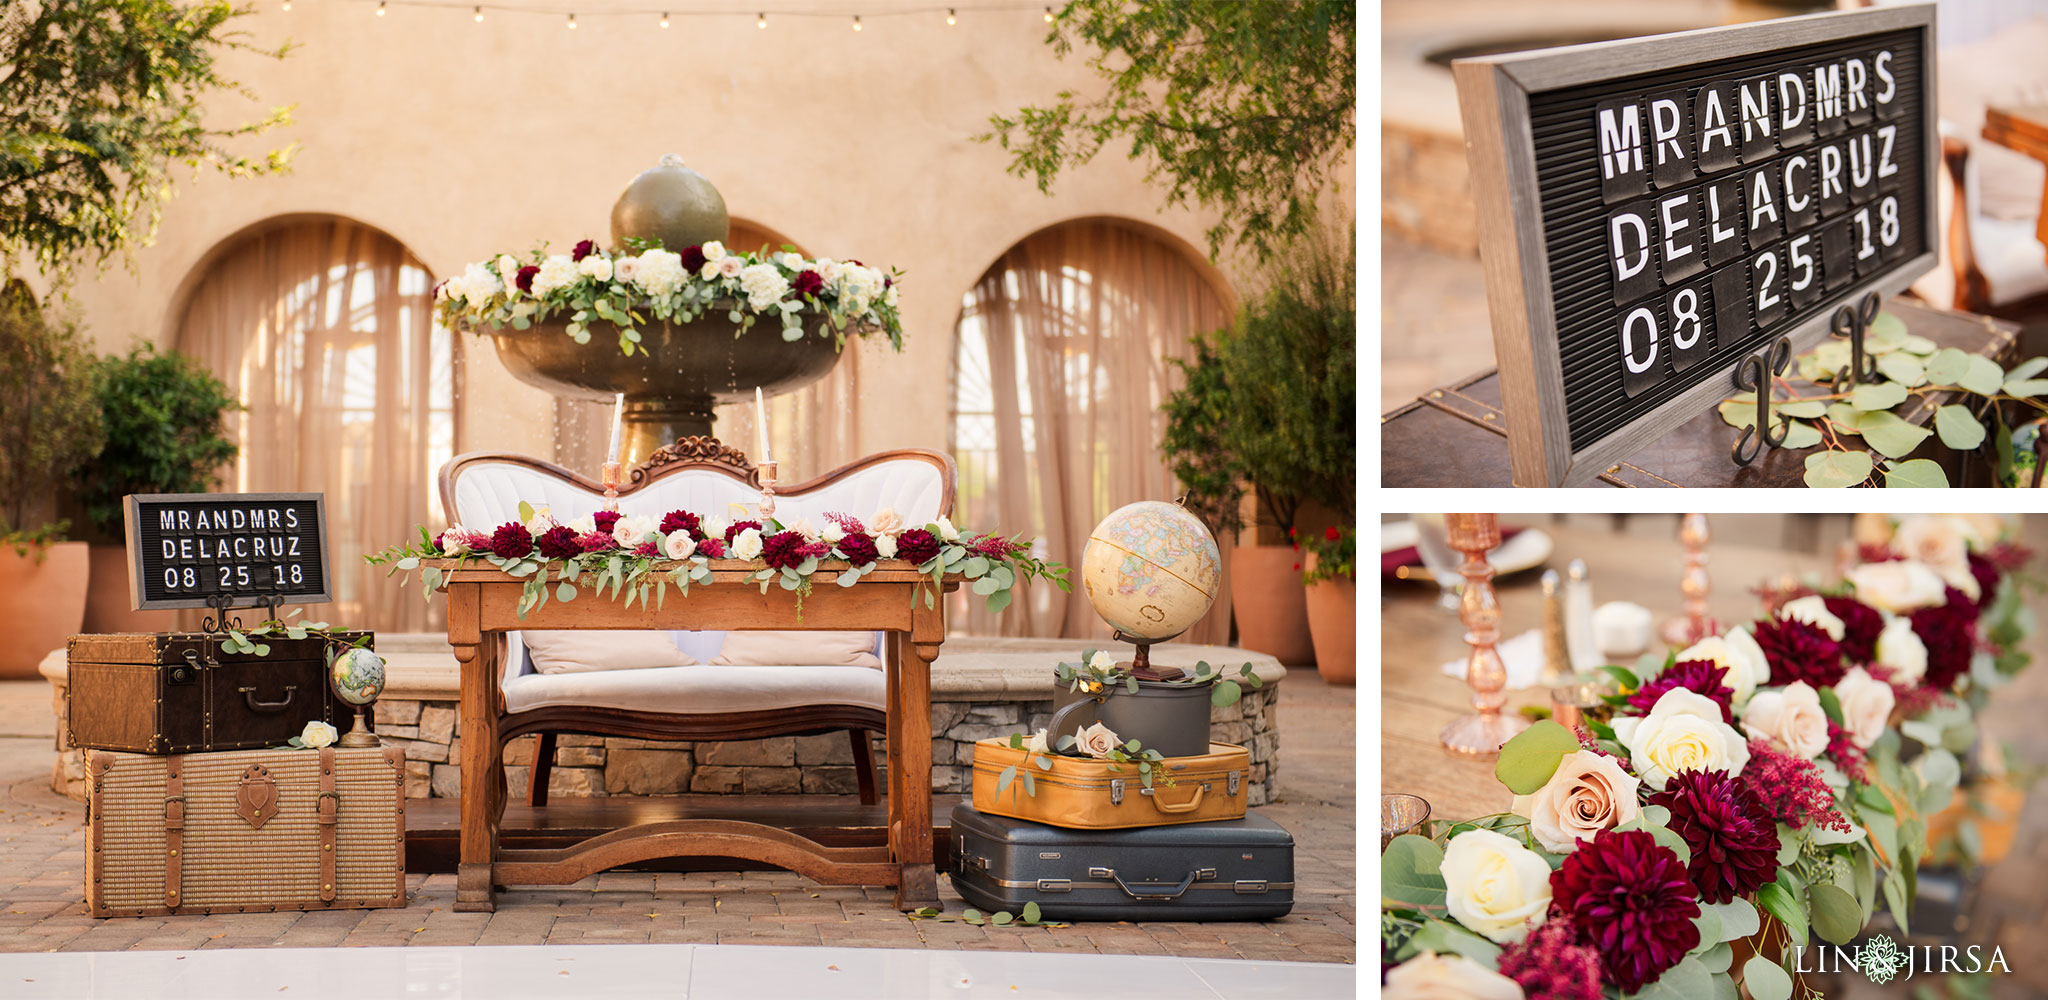 44 serra plaza san juan capistrano travel theme wedding photography